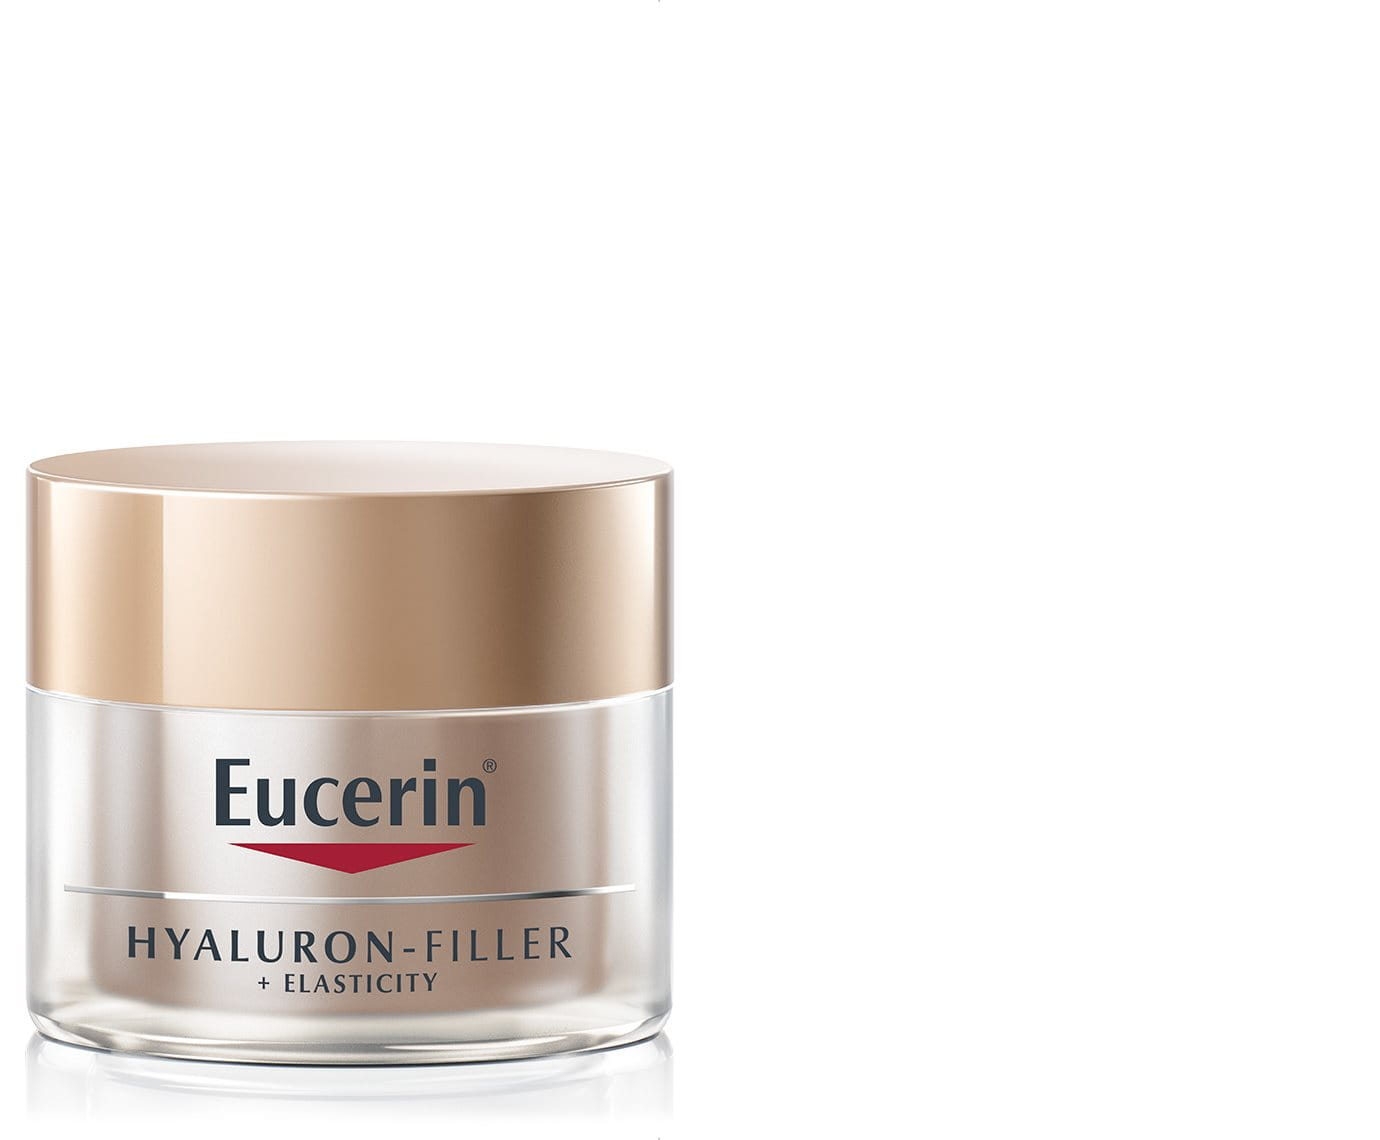 eucerin  hypersensitive skin